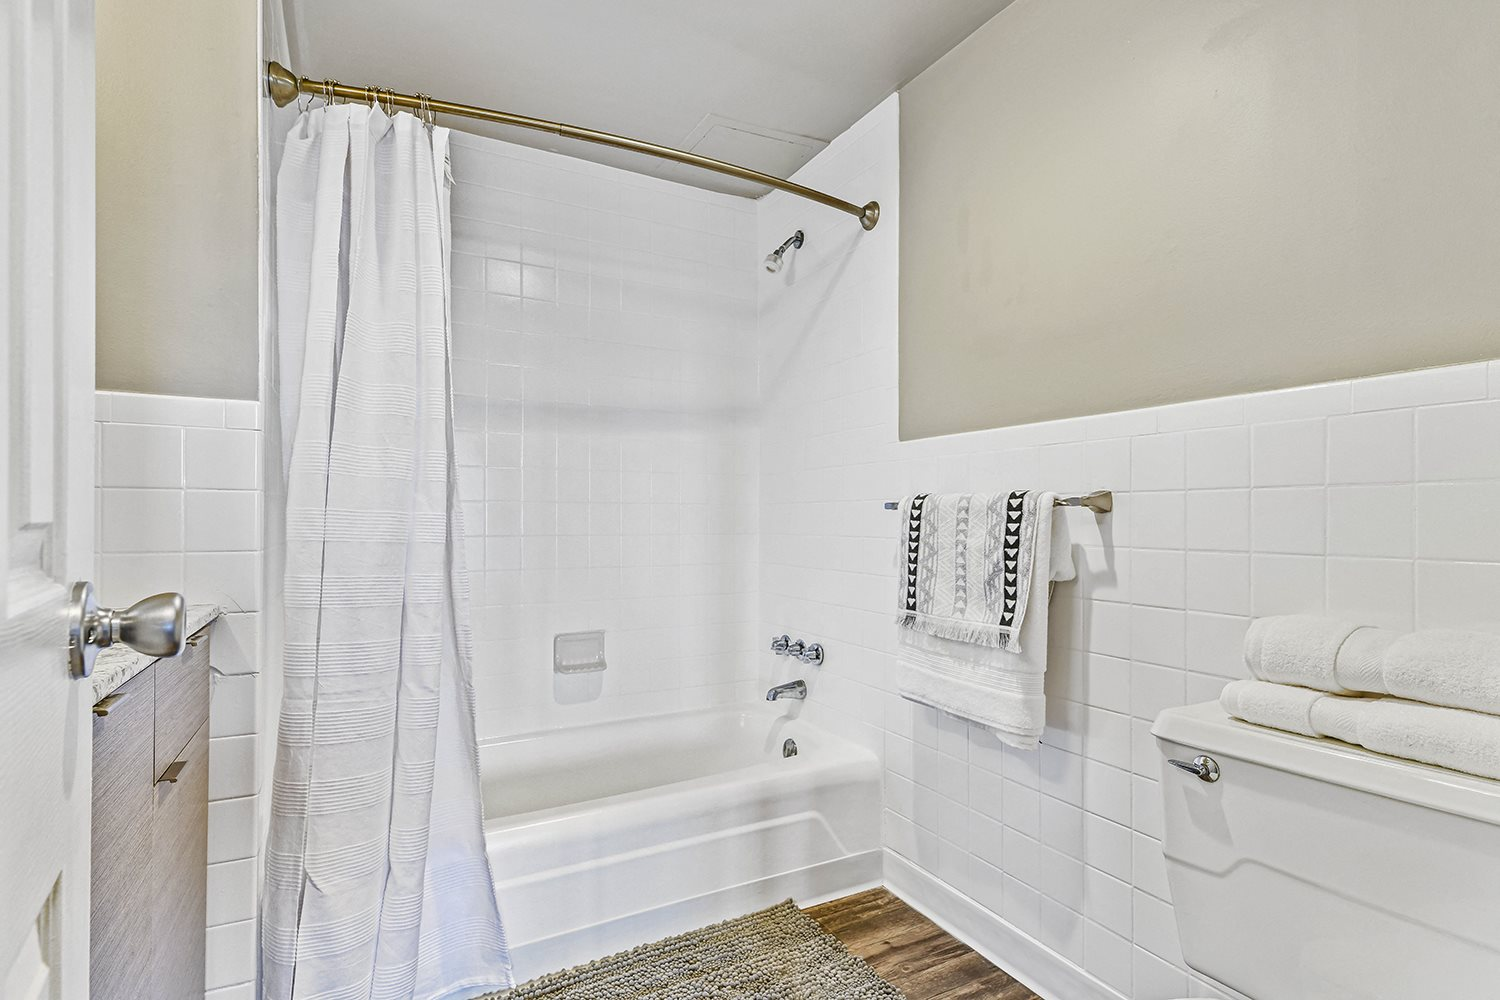 Large Soaking Tub In Master Bathroom with A Tile Surround at CityView on Meridian, Indiana